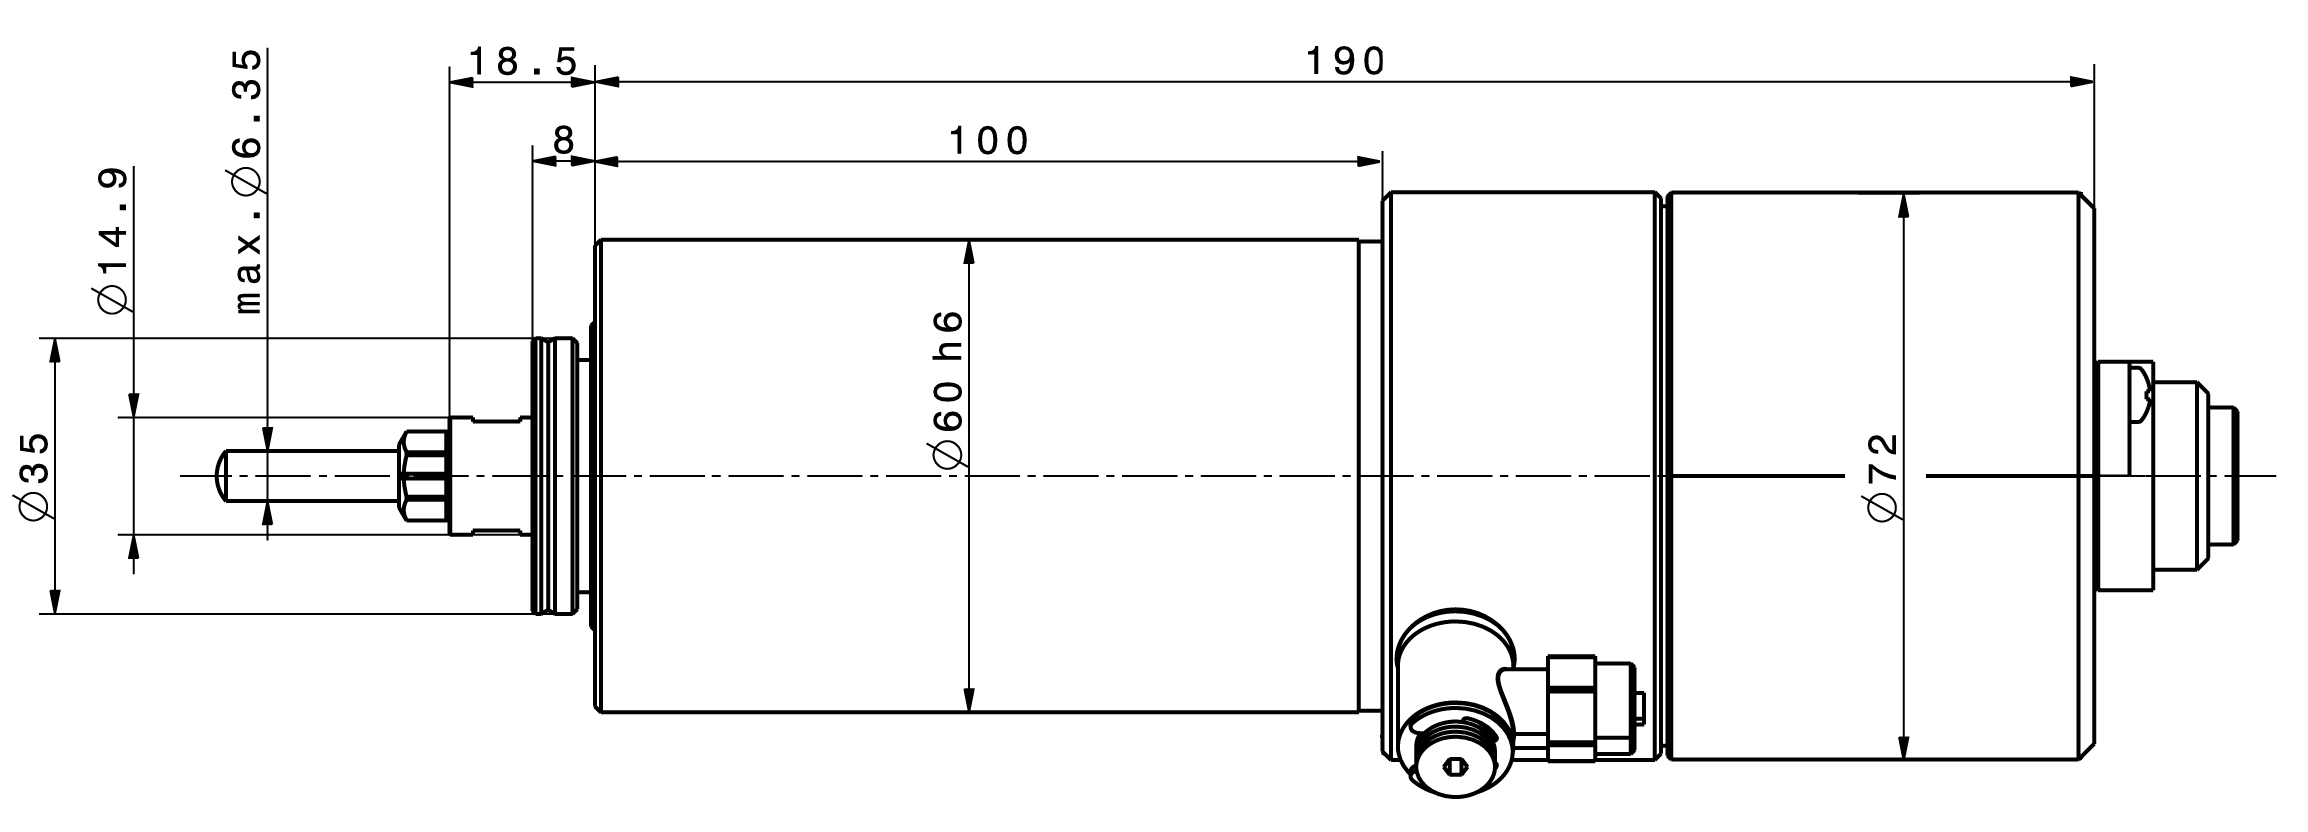 Type 4060 AC dimensions